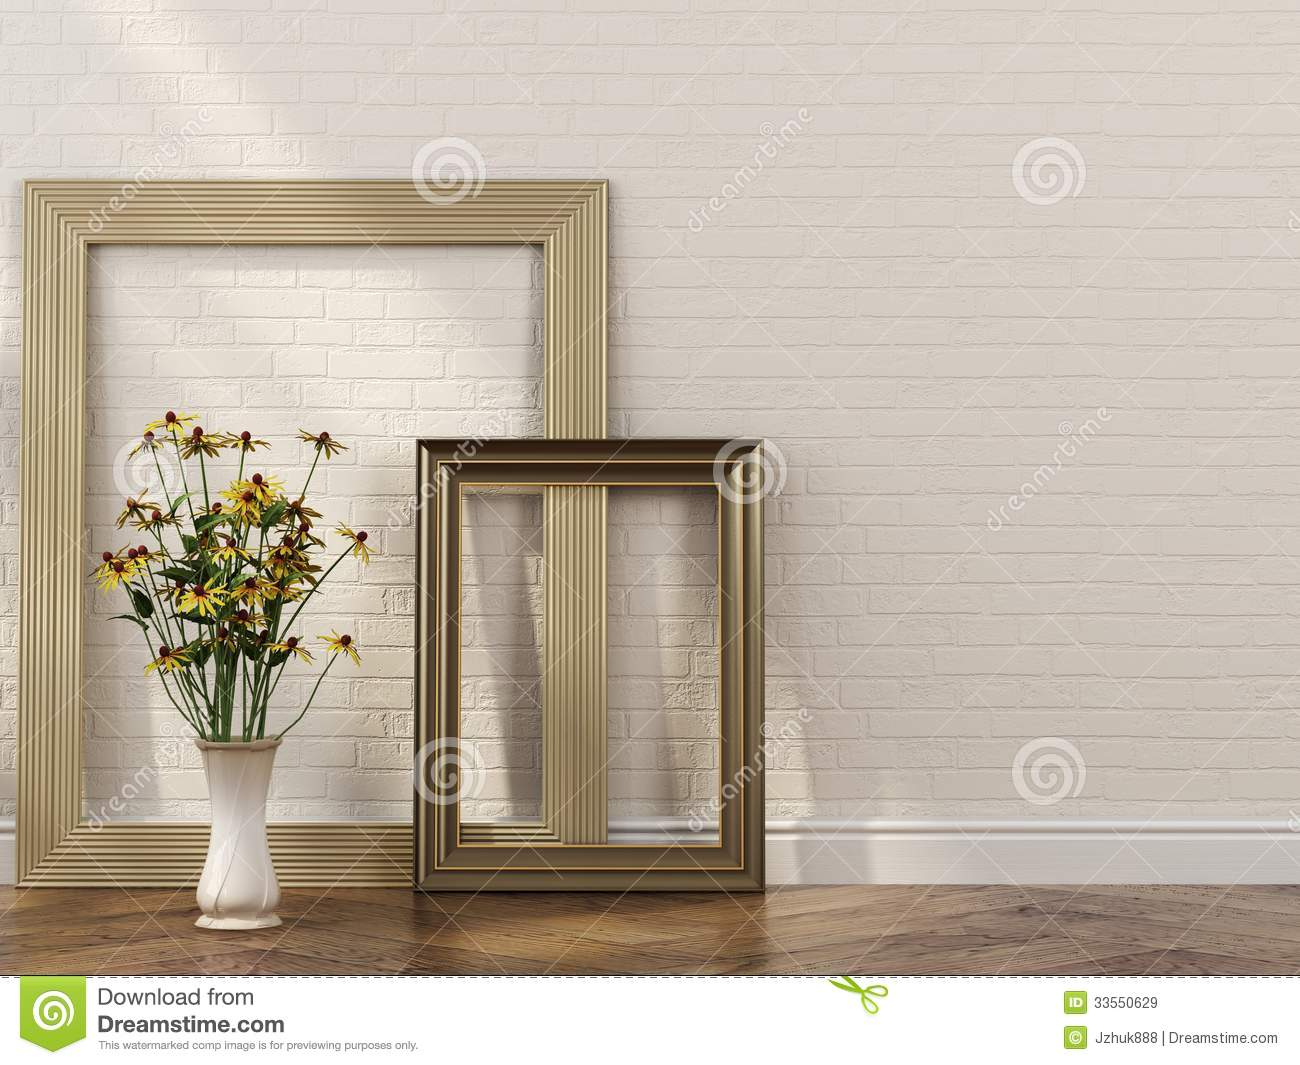 stylish frames and bunch of flowers in interior